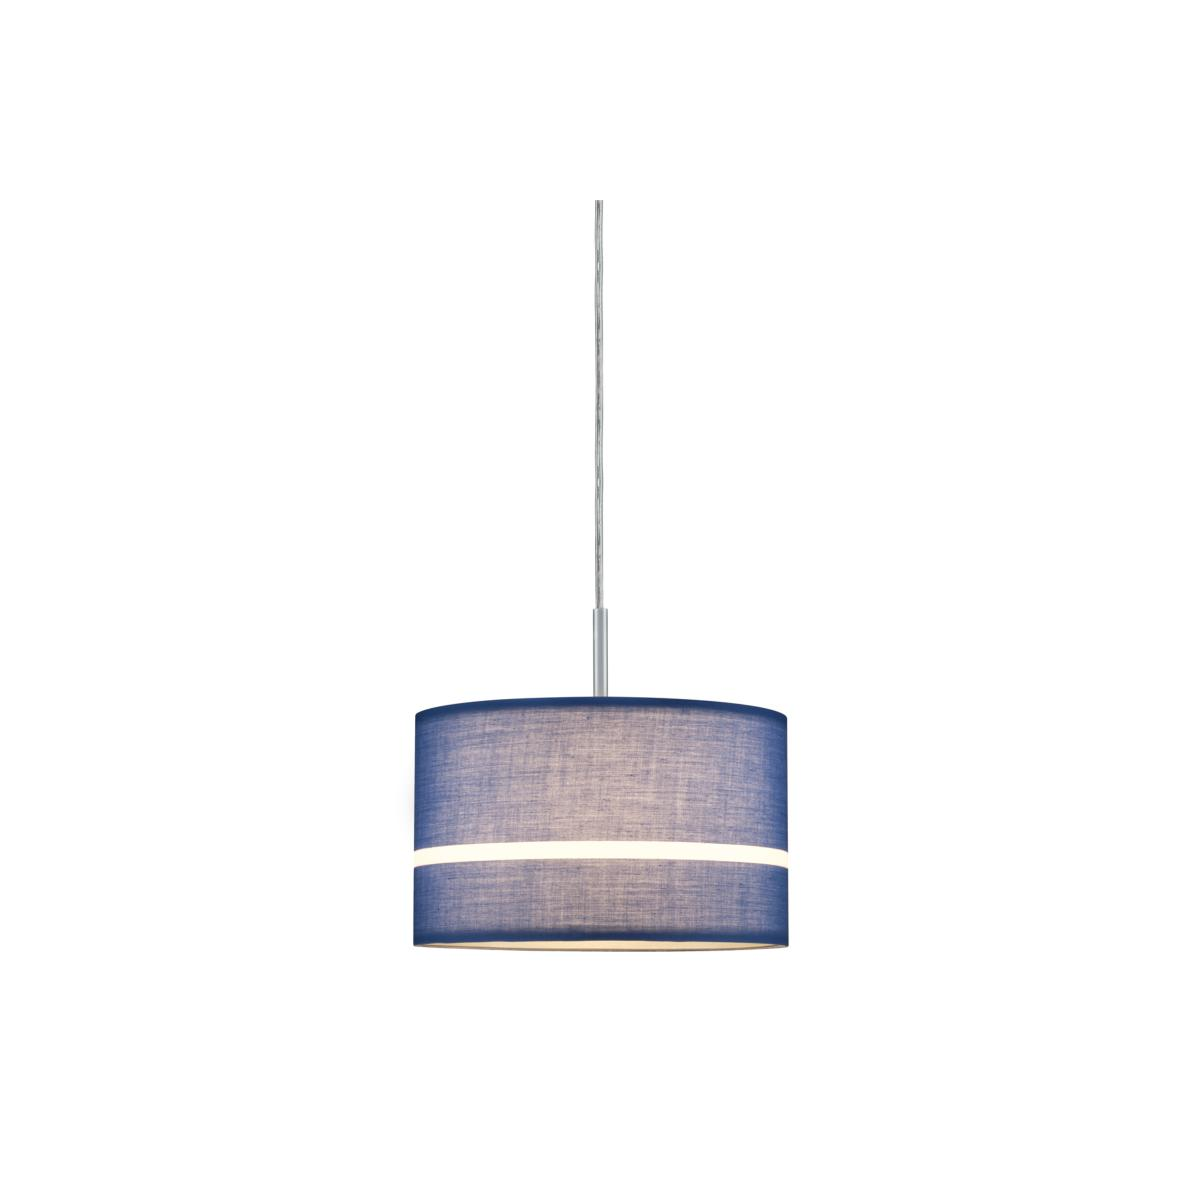 Paulmann Bleu Tessa 60324 Abat Jour Suspension Nn0wm8v